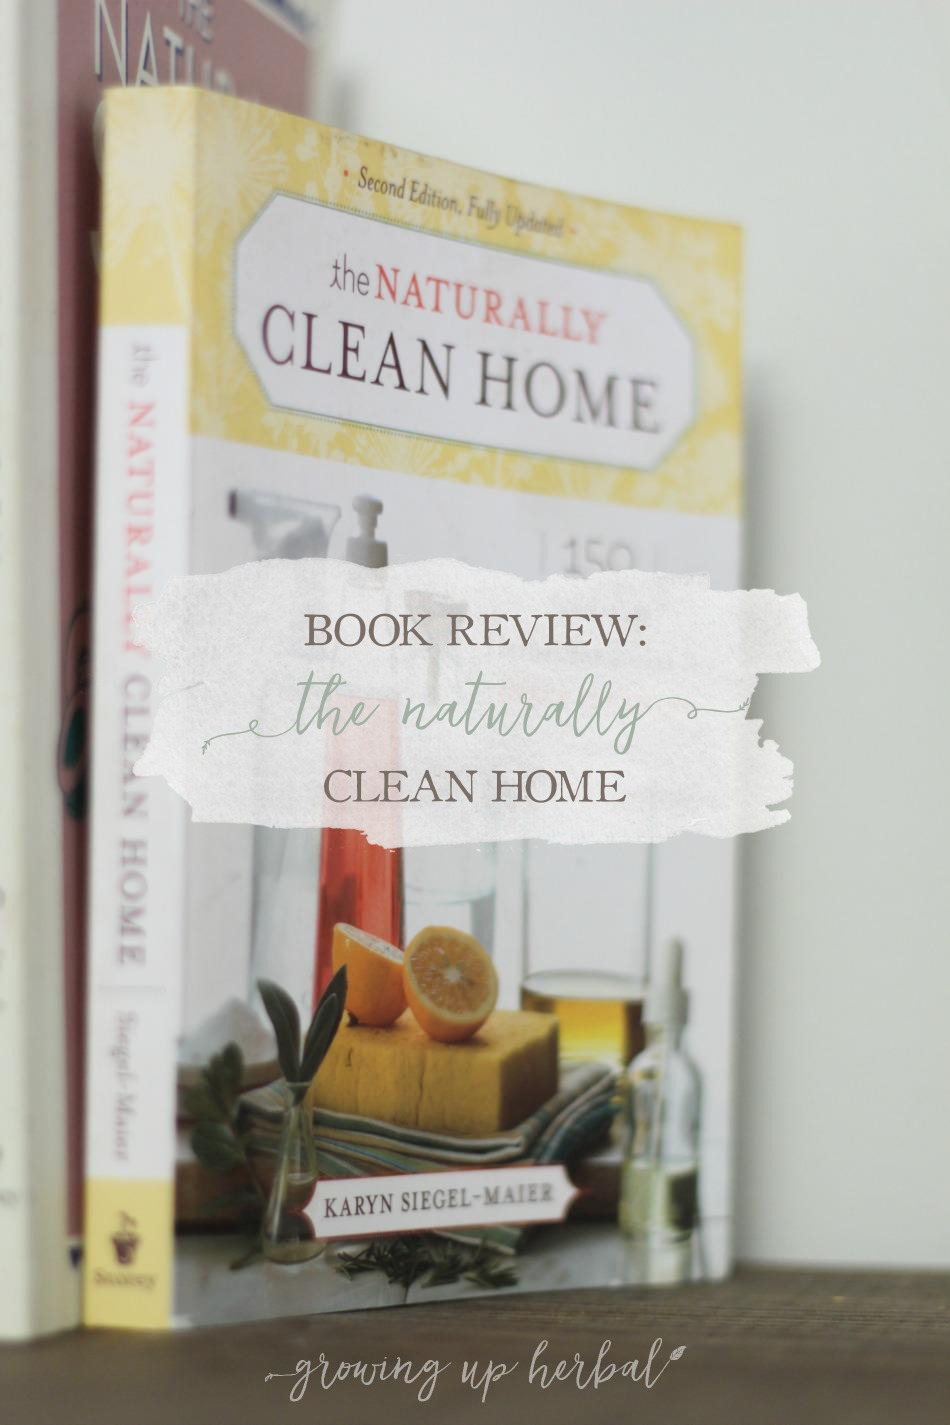 Book Review: The Naturally Clean Home | Growing Up Herbal | Want to clean your home naturally? Looking for great recipes all in one place? This book can help!